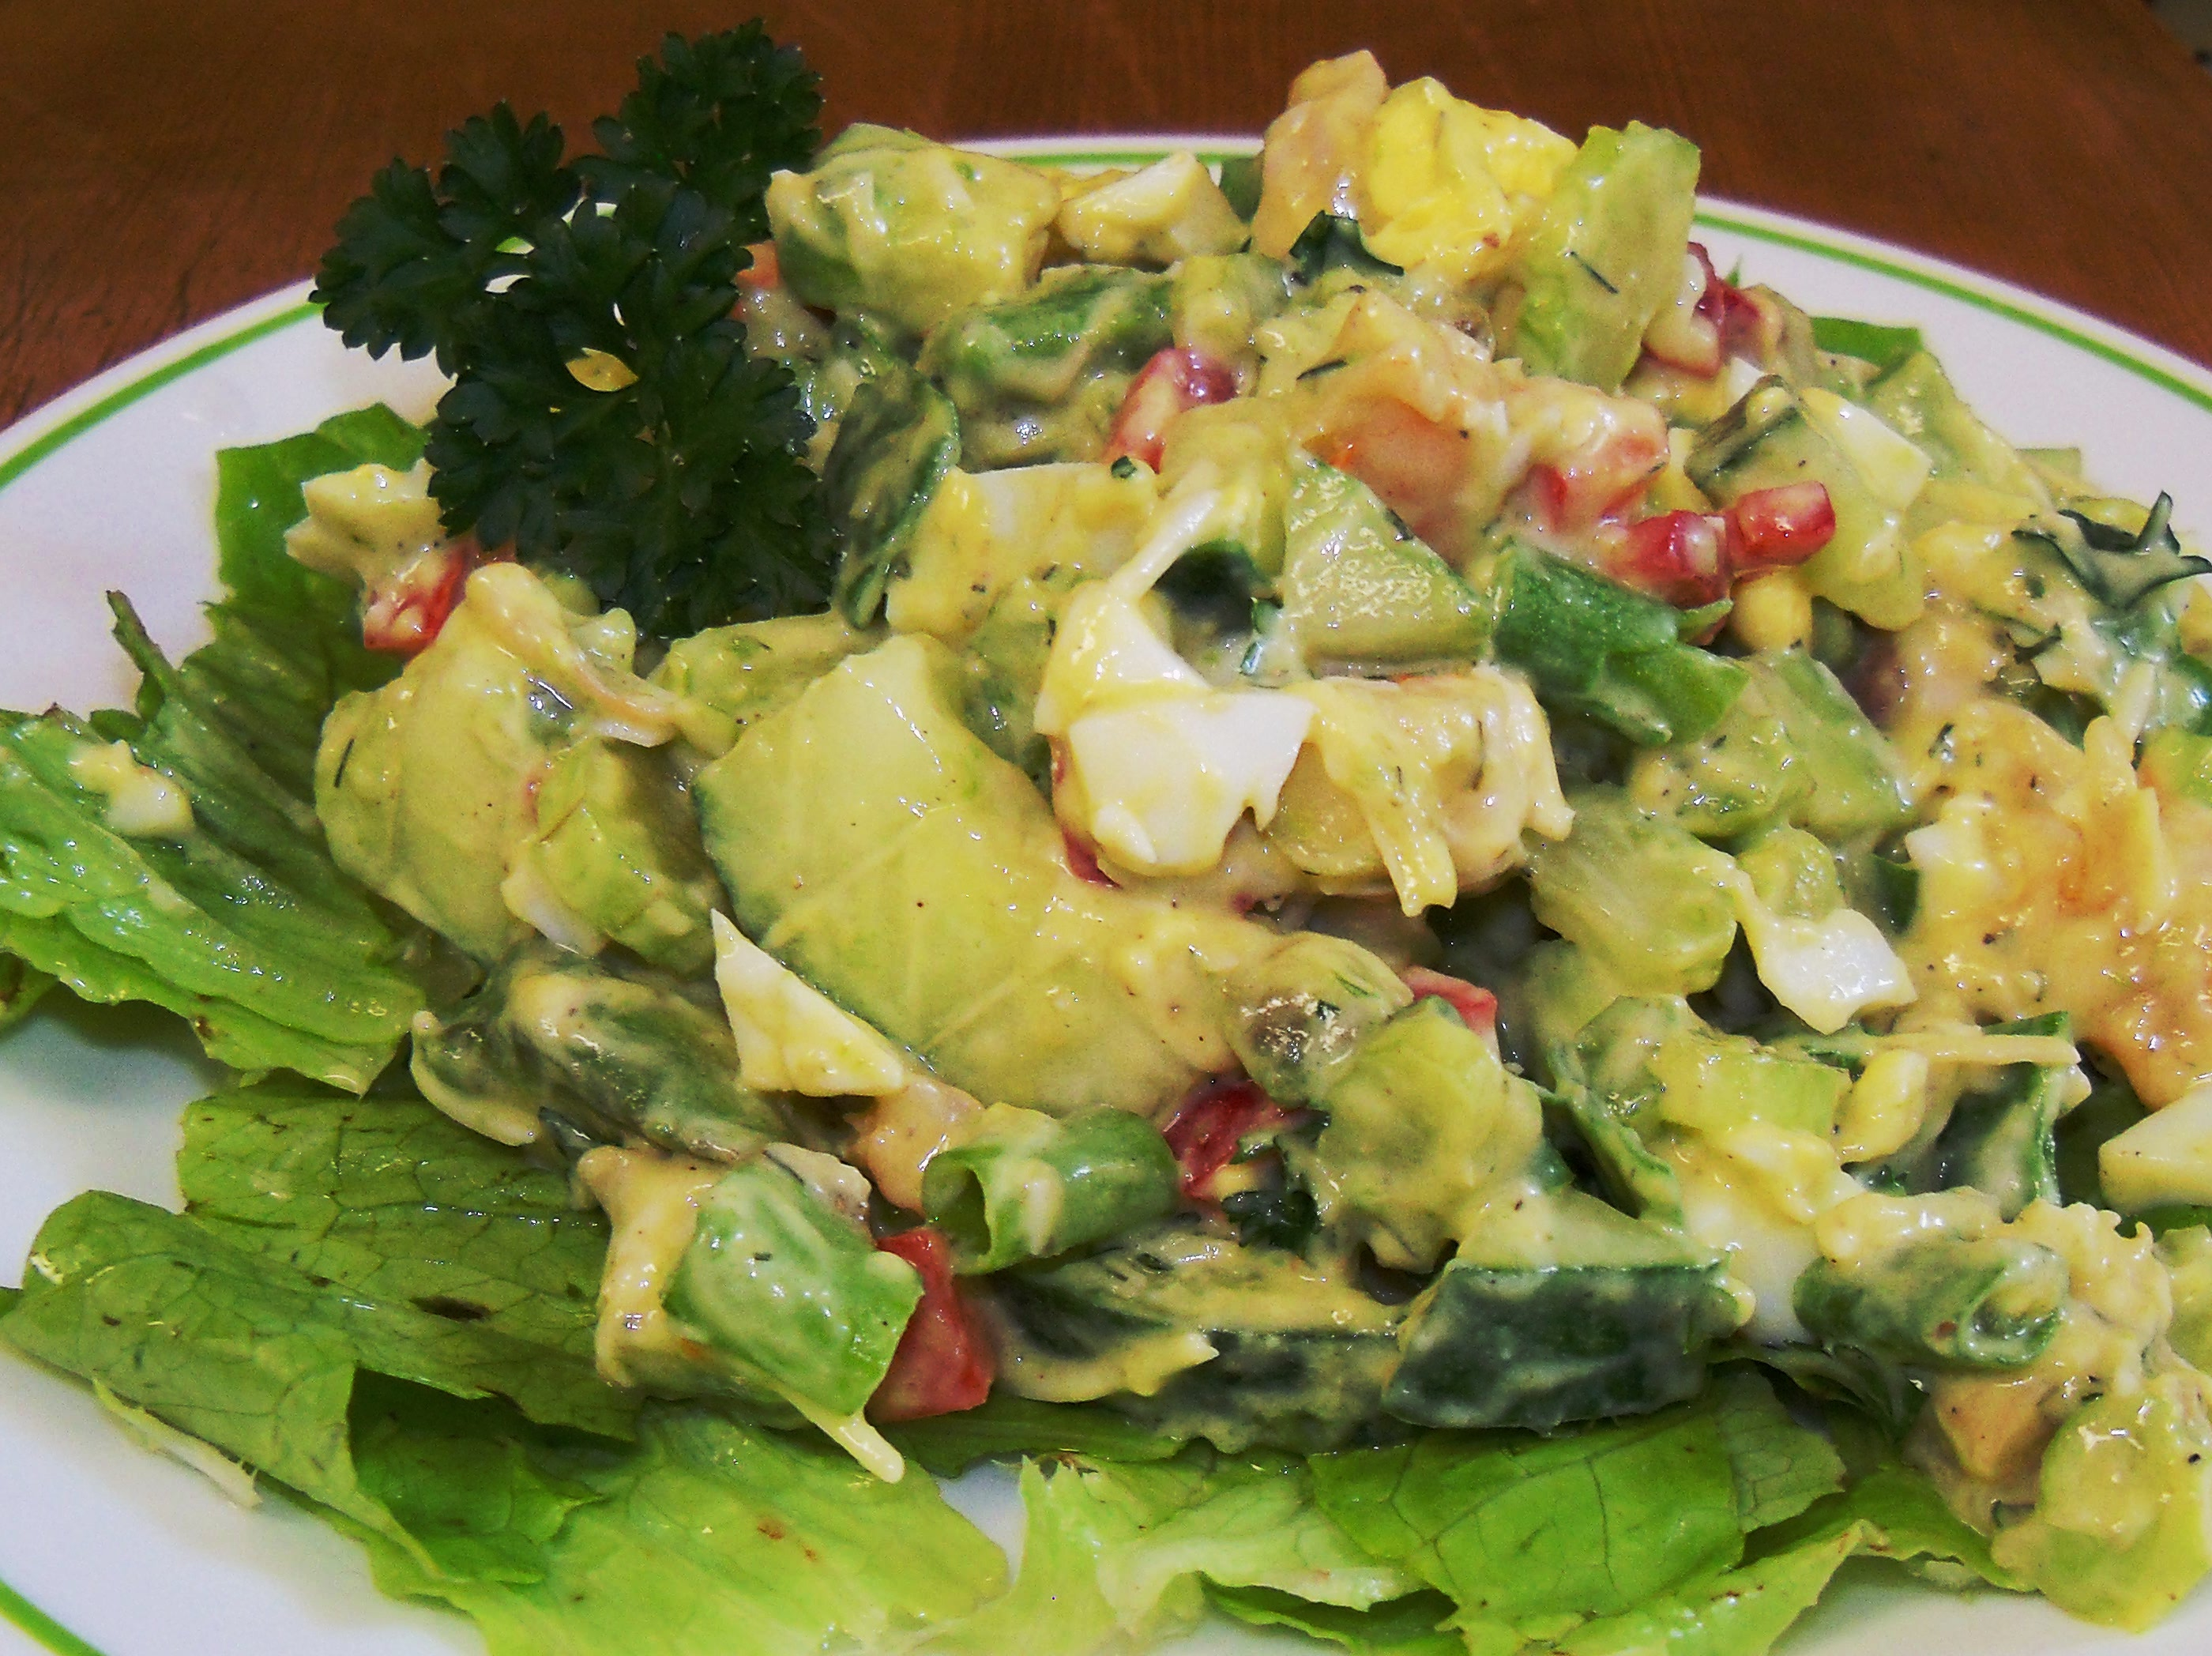 SPINACH SHRIMP AND AVOCADO SALAD